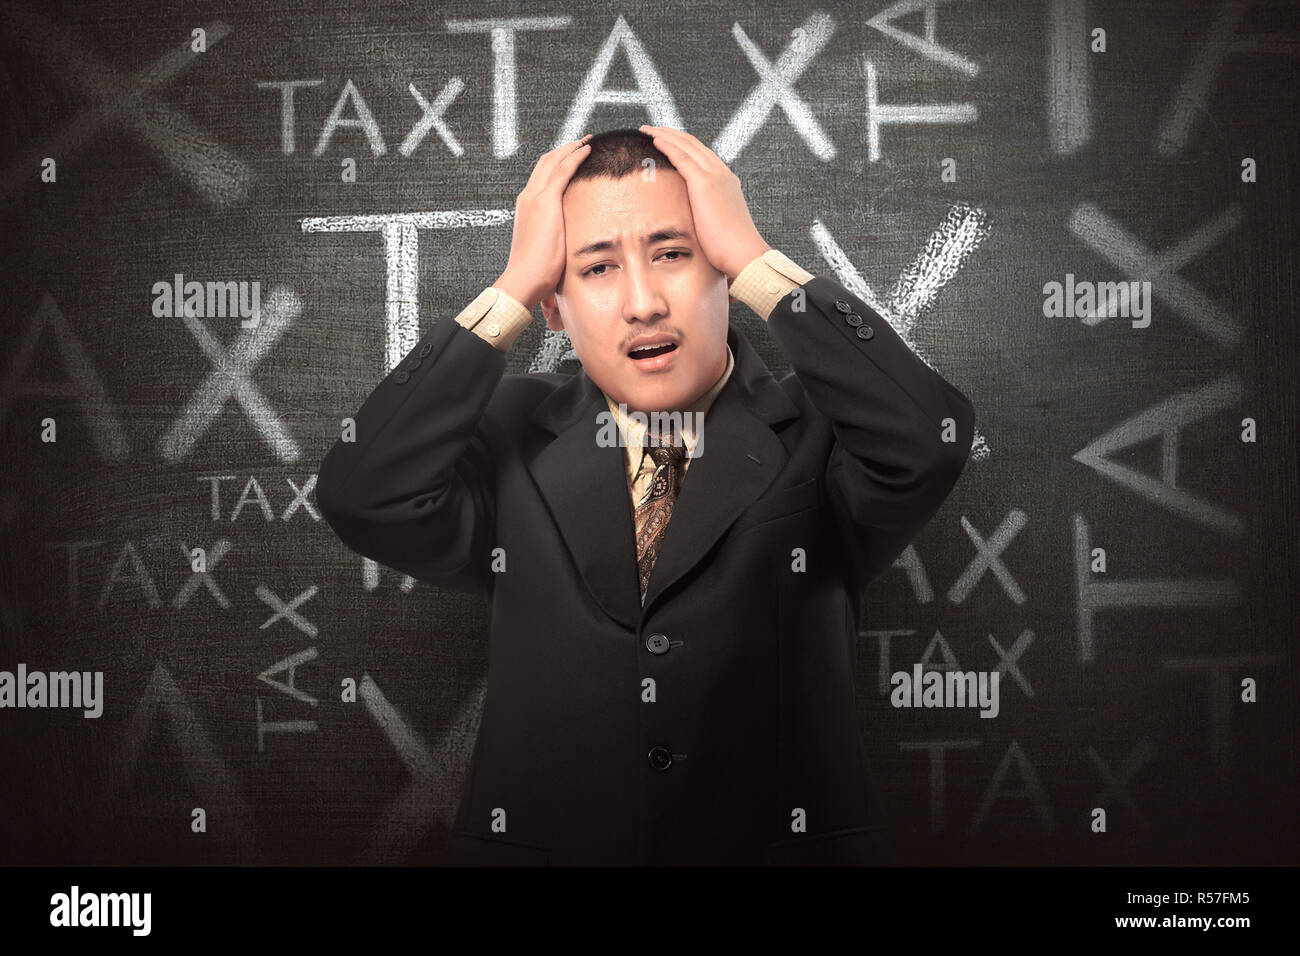 Stressful businessman with Tax text sign - Stock Image